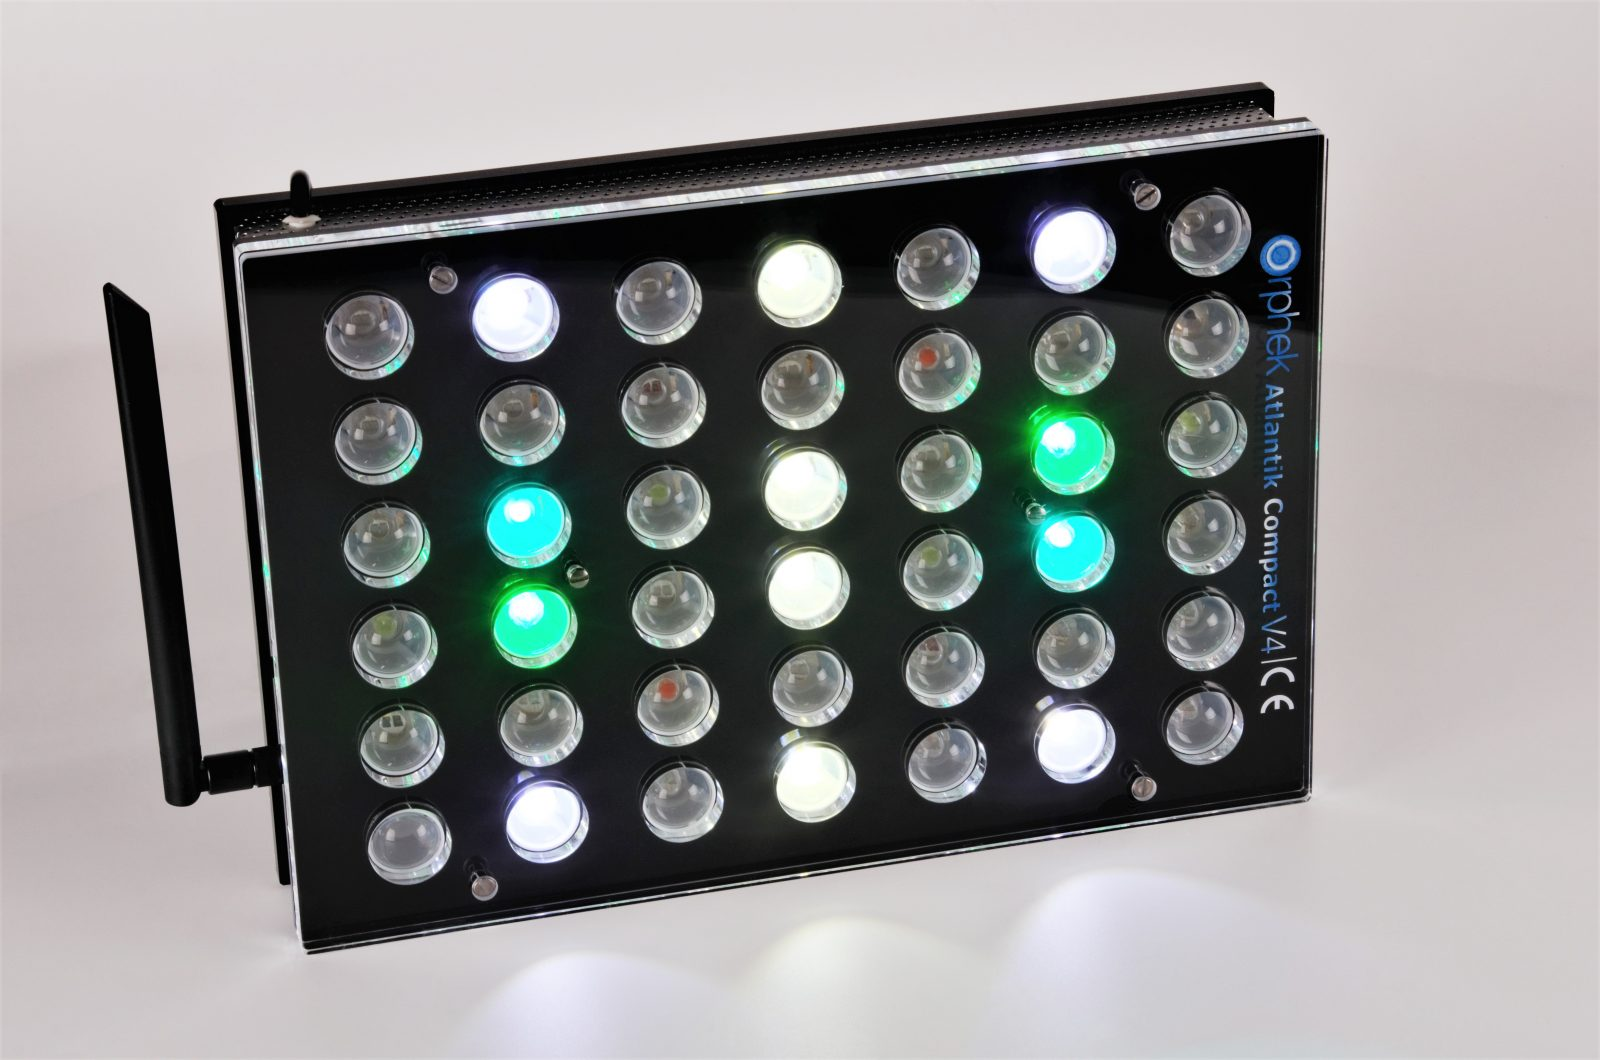 Orphek-Aquarium-LED-Beleuchtung-Atlantik -Compact-V4-light -on - Kanal 1